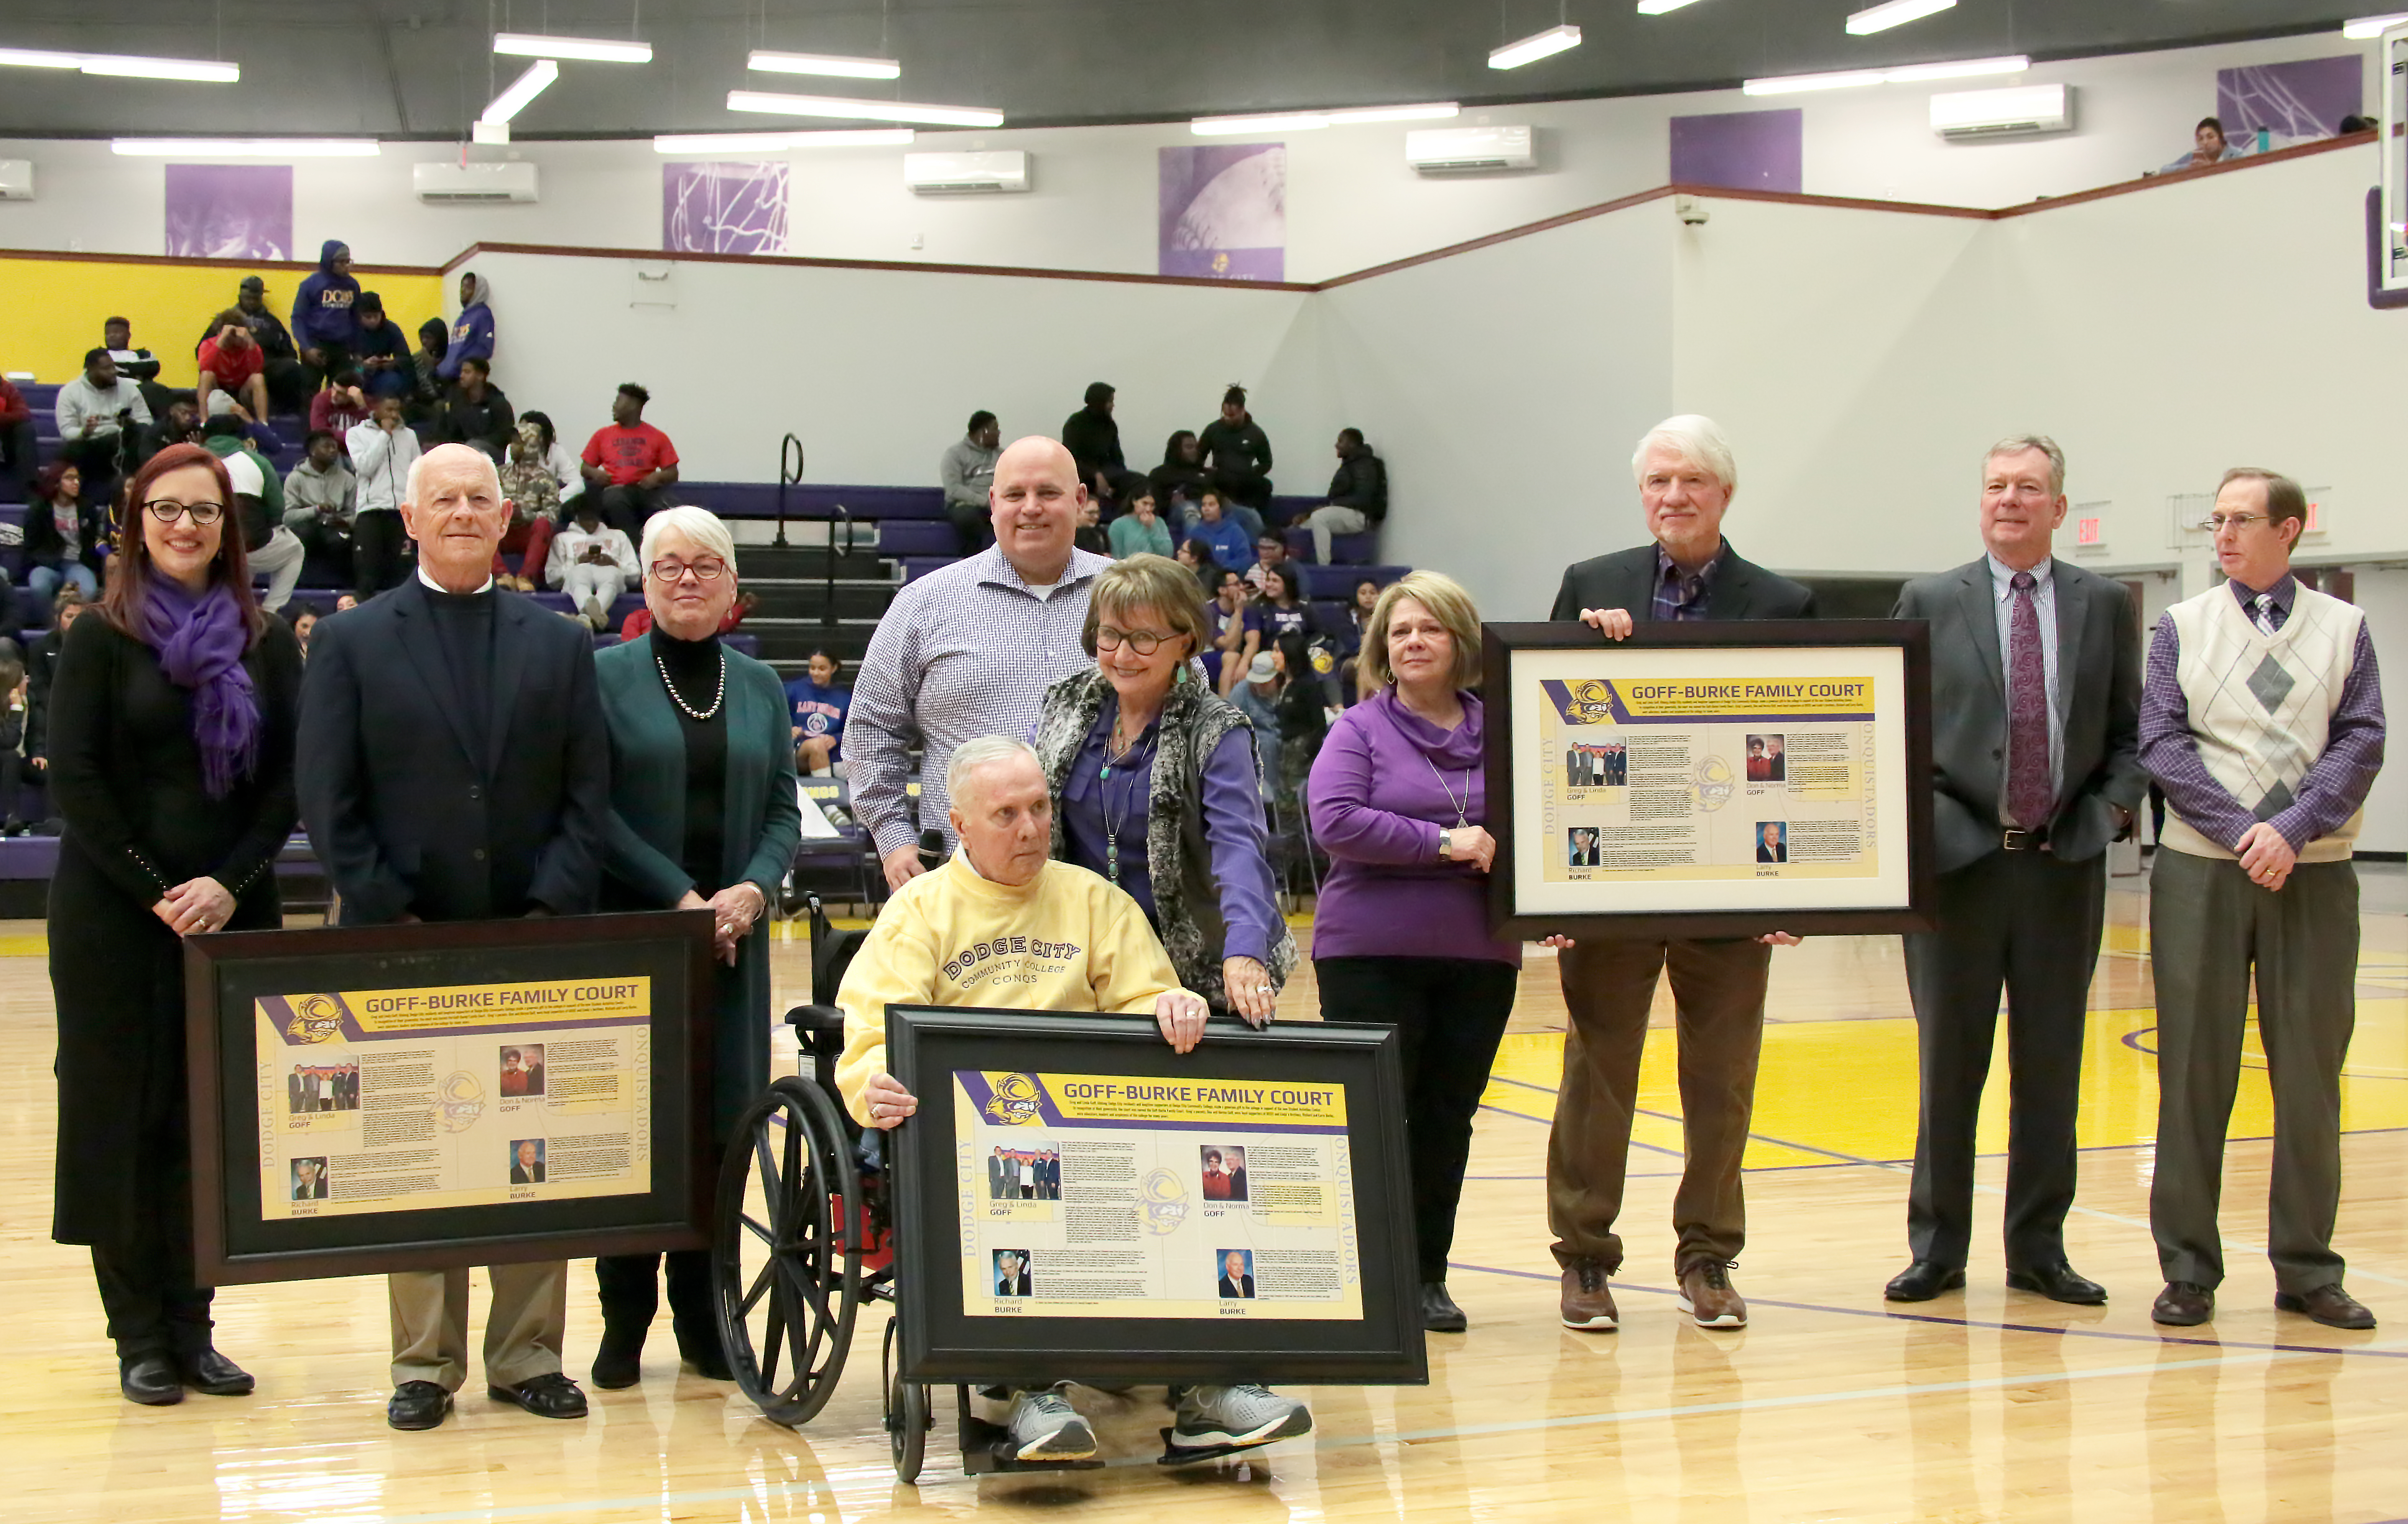 The Goff and Burke Families receiving the posters commemorating the court dedication